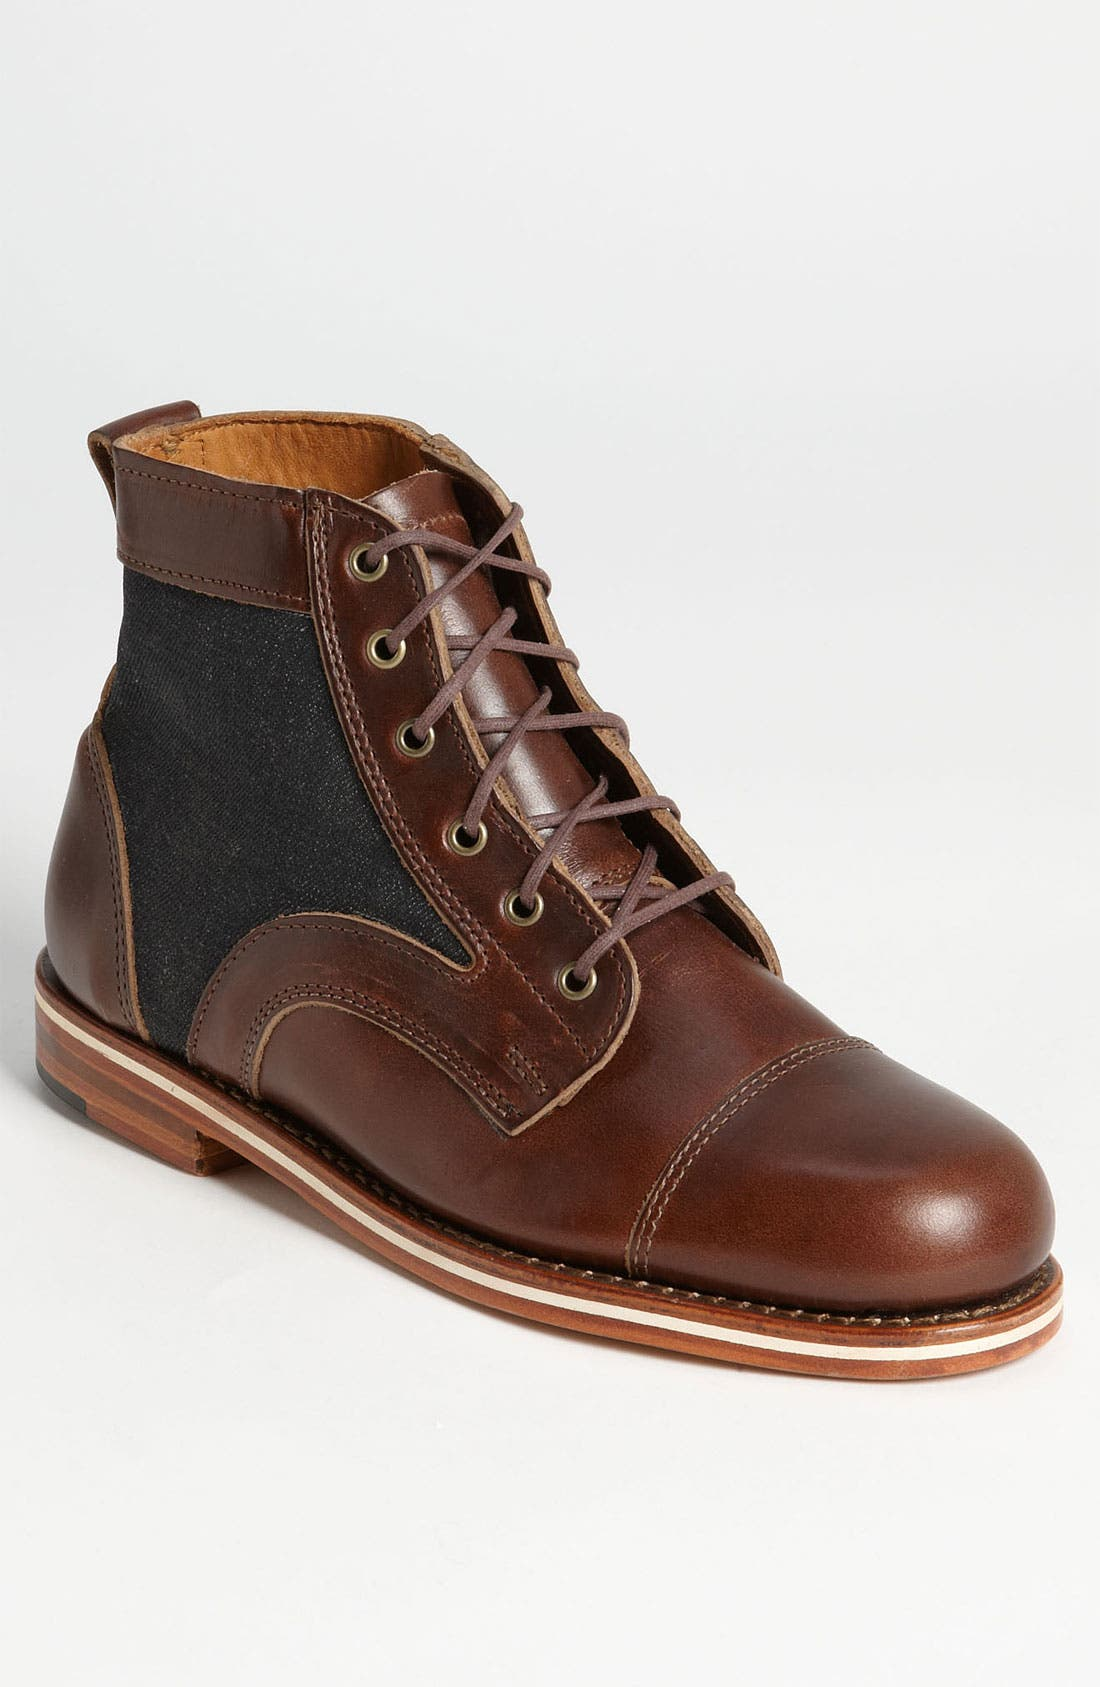 Alternate Image 1 Selected - HELM 'Reid' Cap Toe Boot